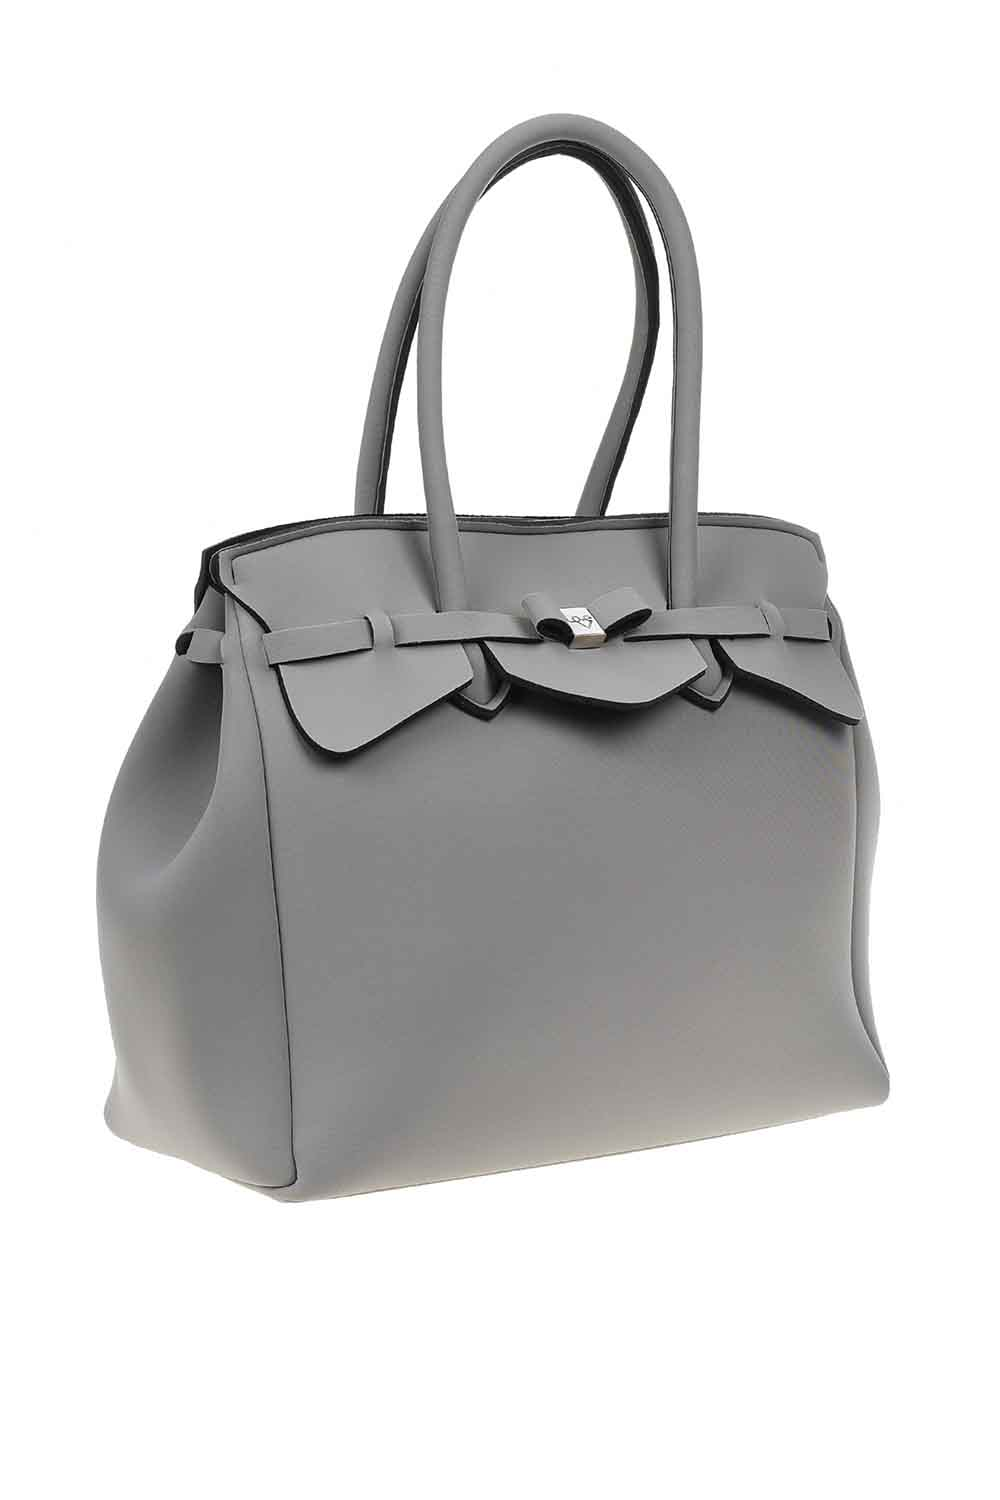 MIZALLE Large Fabric Shoulder Bag (Grey) (1)